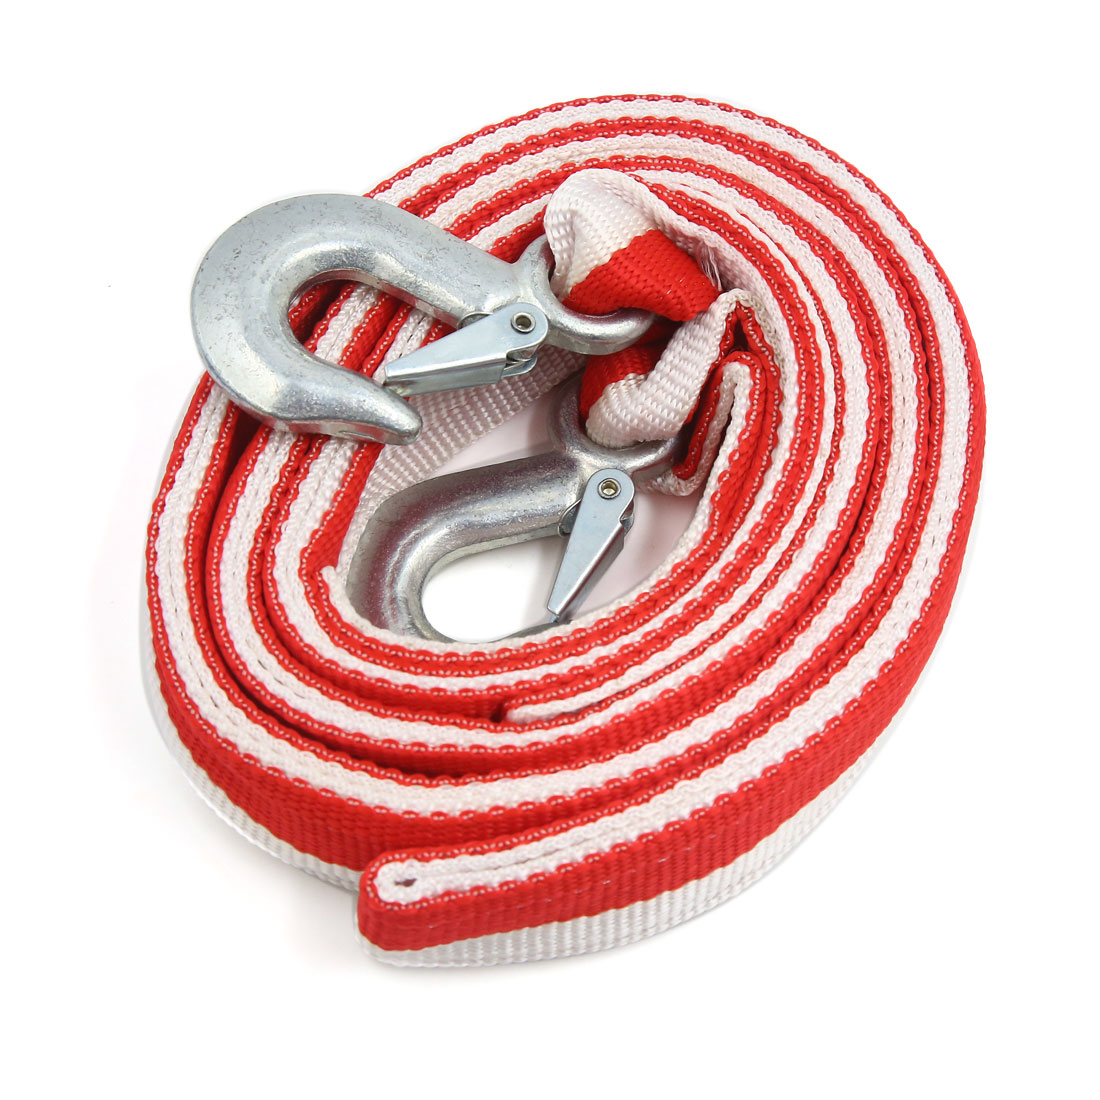 3.5m Red Towing Strap Rope Cable Car Vehicle Recovery Rescue Tools w 2 Hooks by Unique Bargains